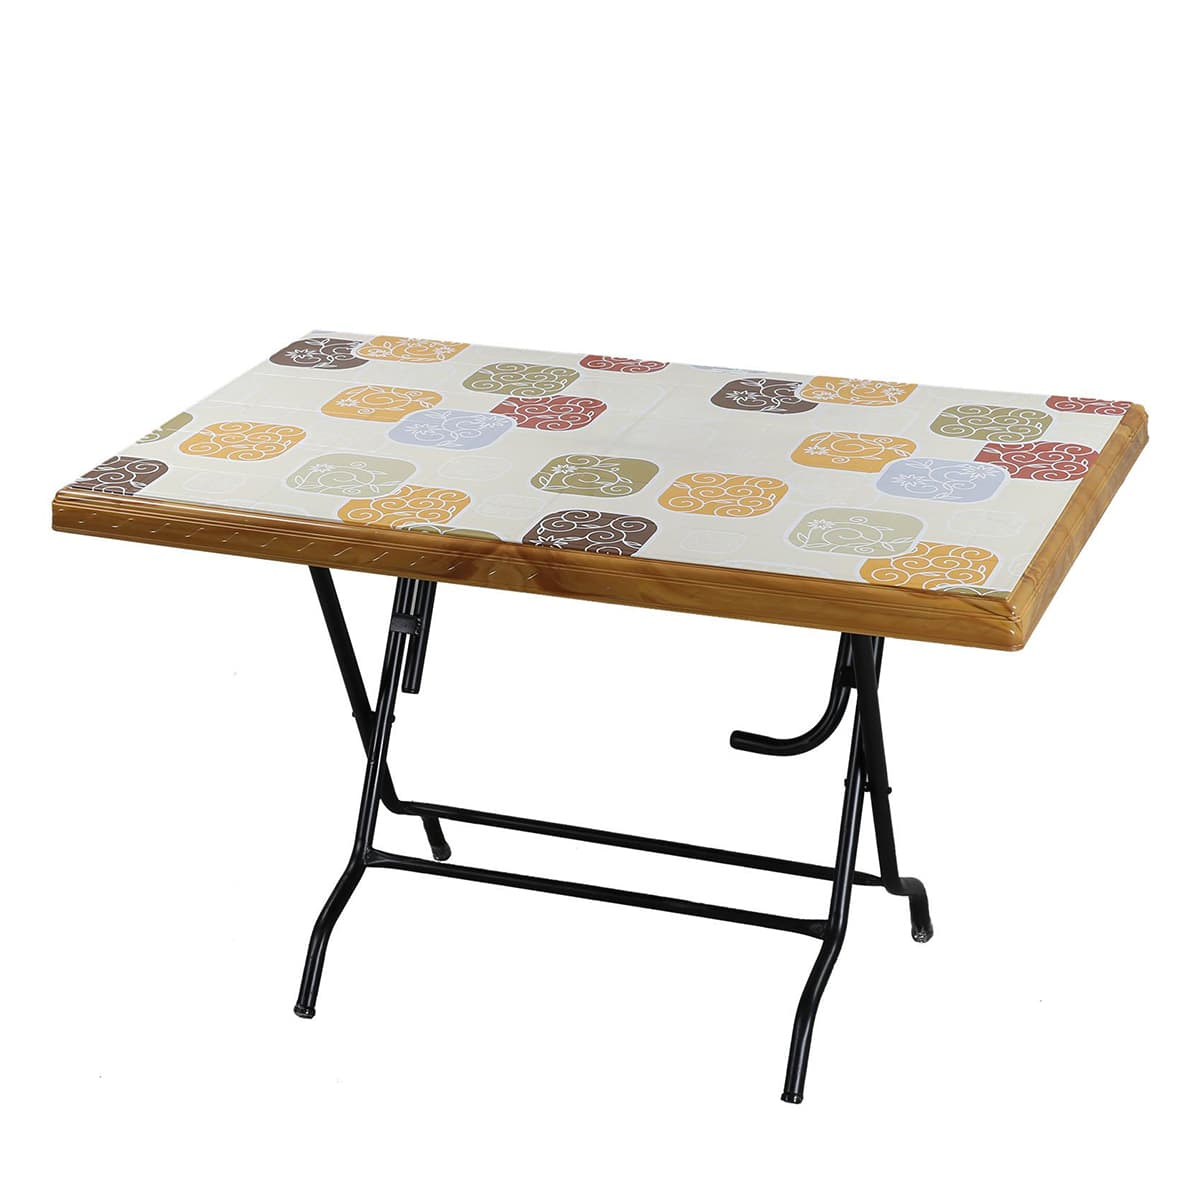 Rfl Dinning Table 4 Seated Decorate 95292 St Leg Printed Buy Online At Best Prices In Bangladesh Daraz Com Bd